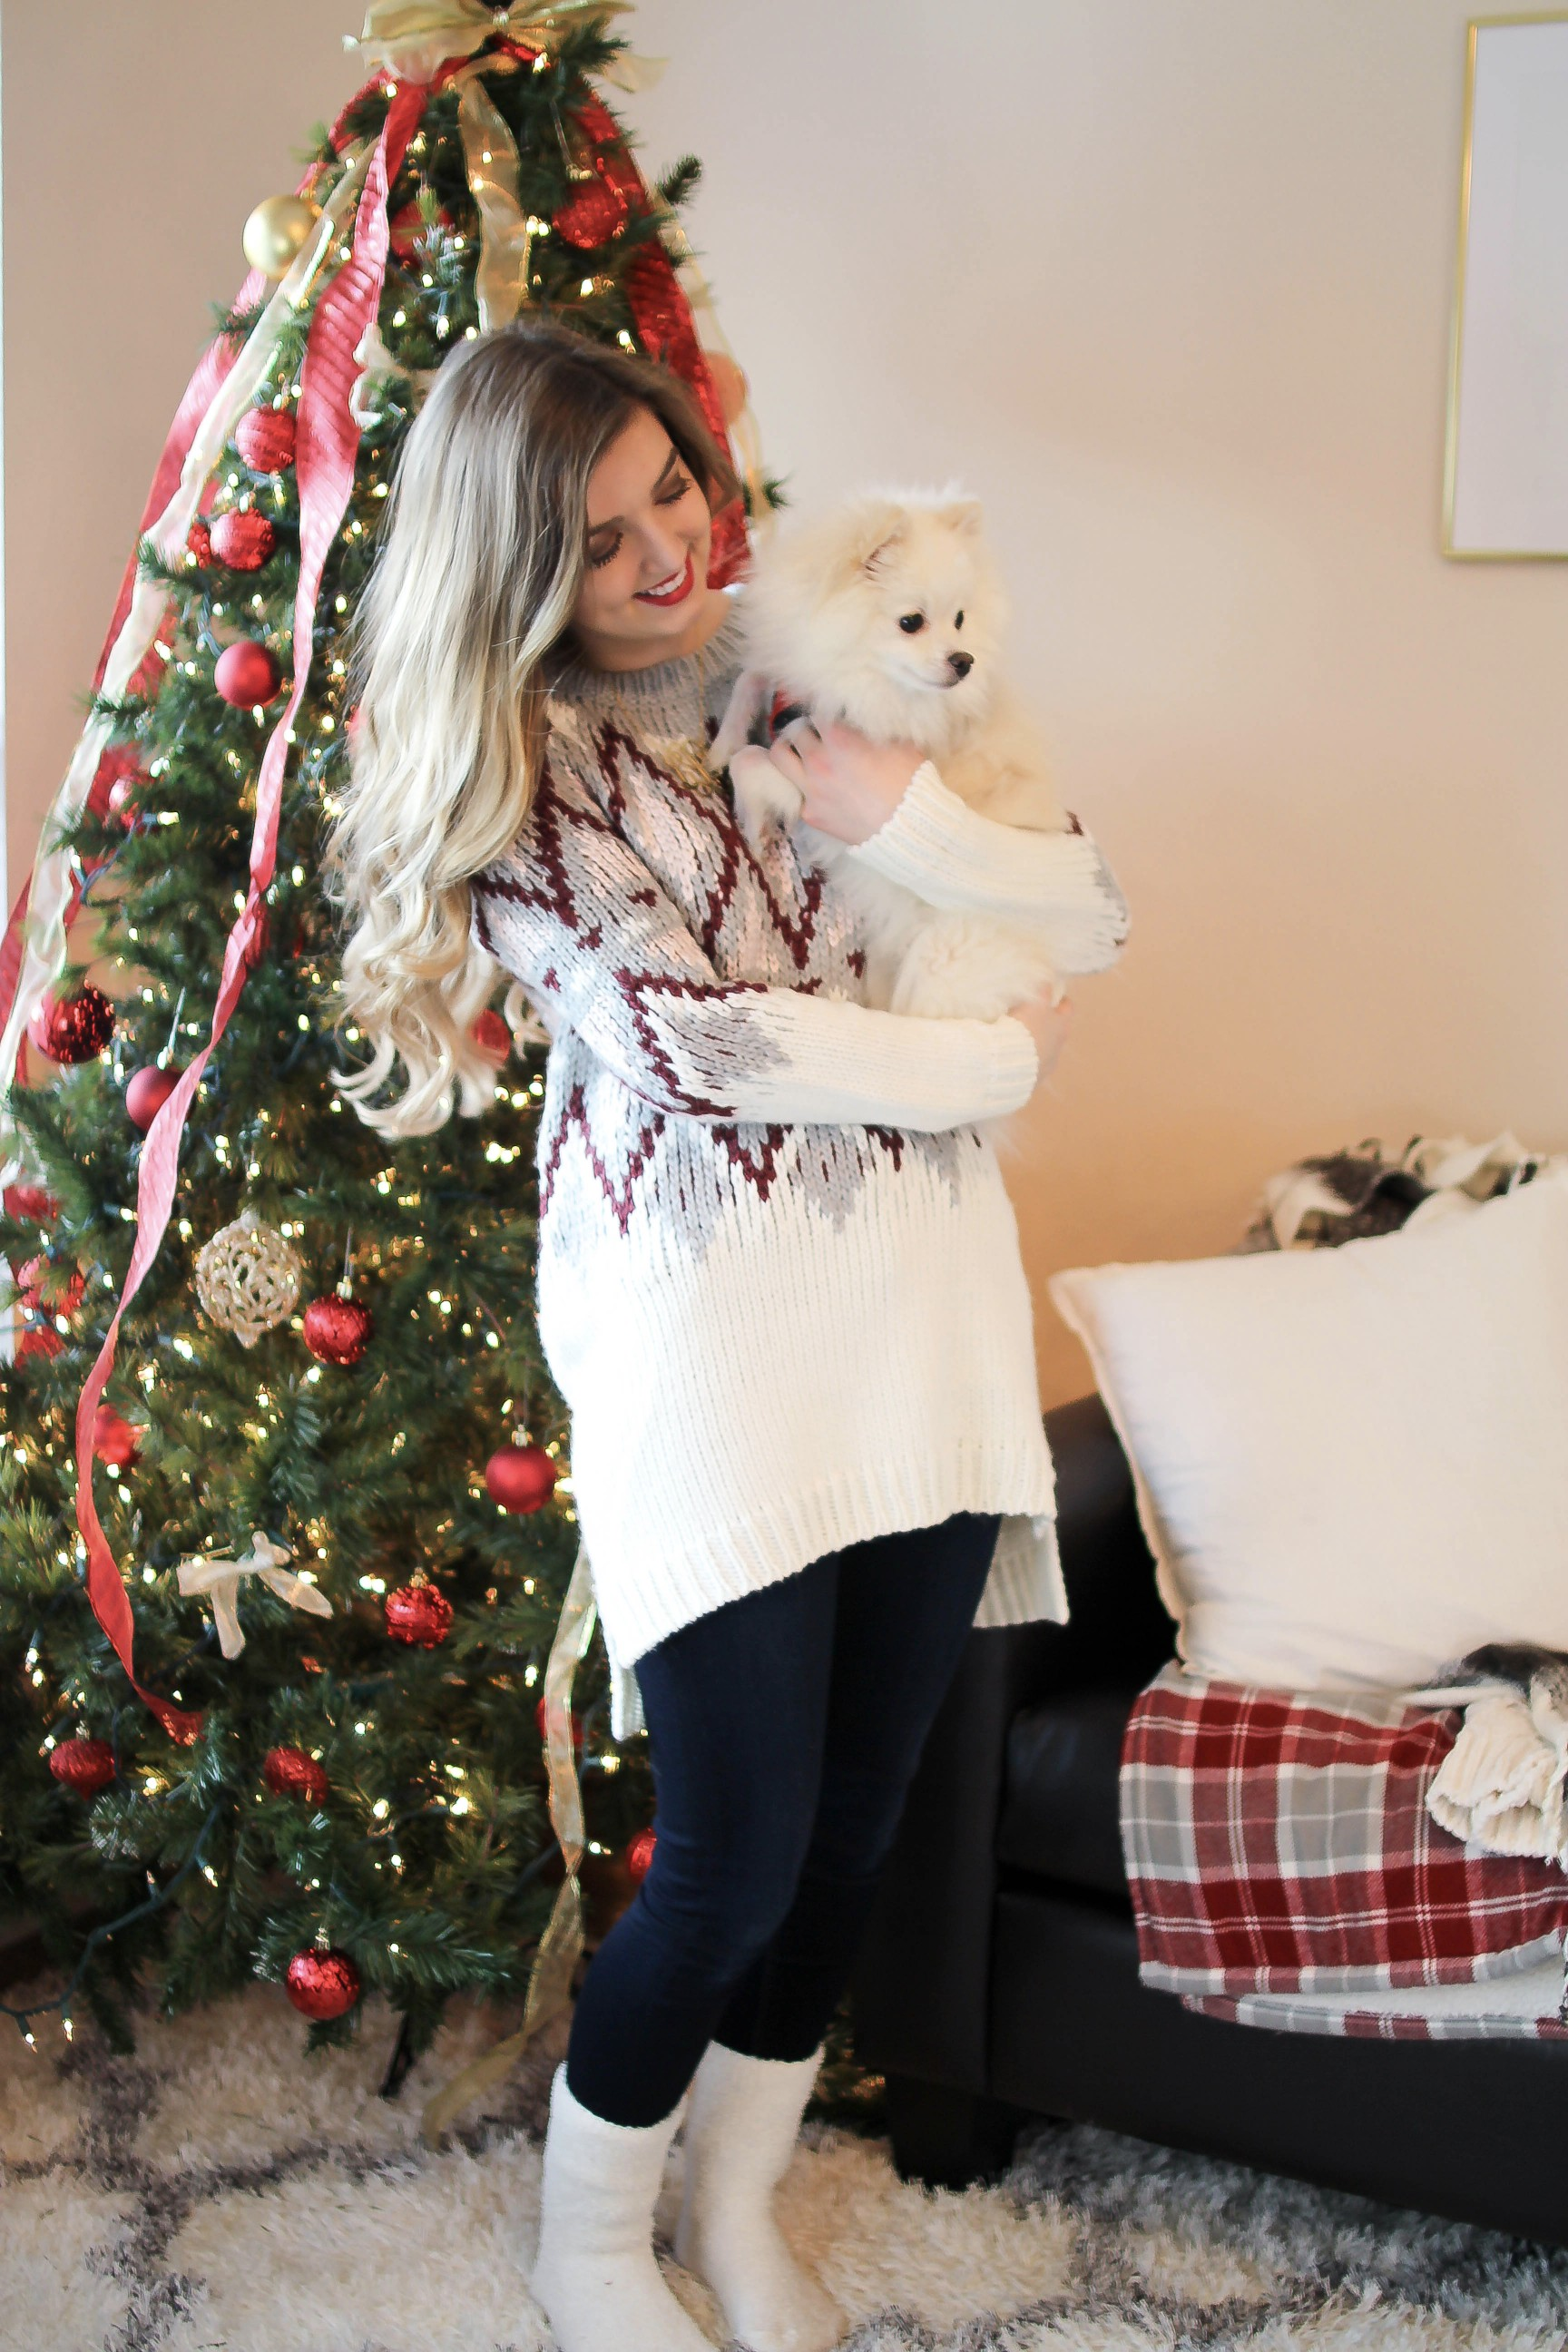 SLEIGH YOUR LOOK! Adorable oversized sweater with fun colors and pattern. Super cozy winter outfit. Pomeranian puppy, white Pomeranian, miniature Pomeranian, toy Pomeranian, red lips and curled hair by Lauren Lindmark dailydoseofcharm.com daily dose of charm